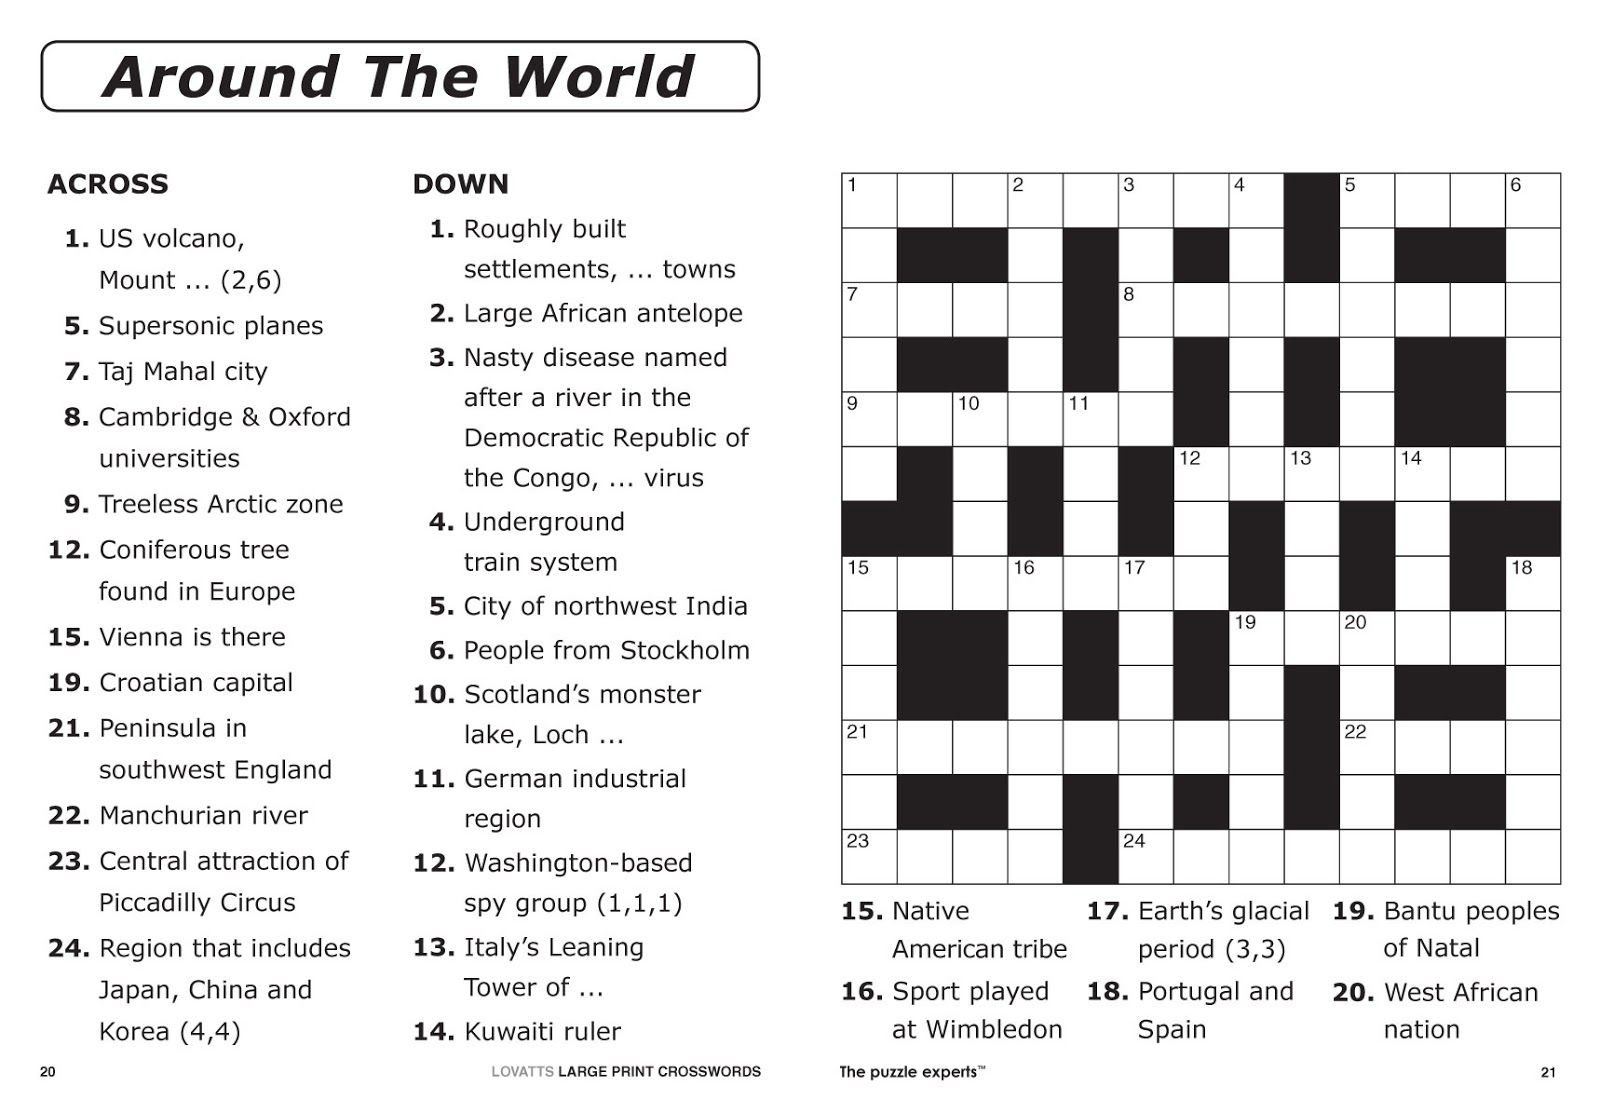 Free Printable Large Print Crossword Puzzles | M3U8 - Easy Printable Crossword Puzzles Large Print